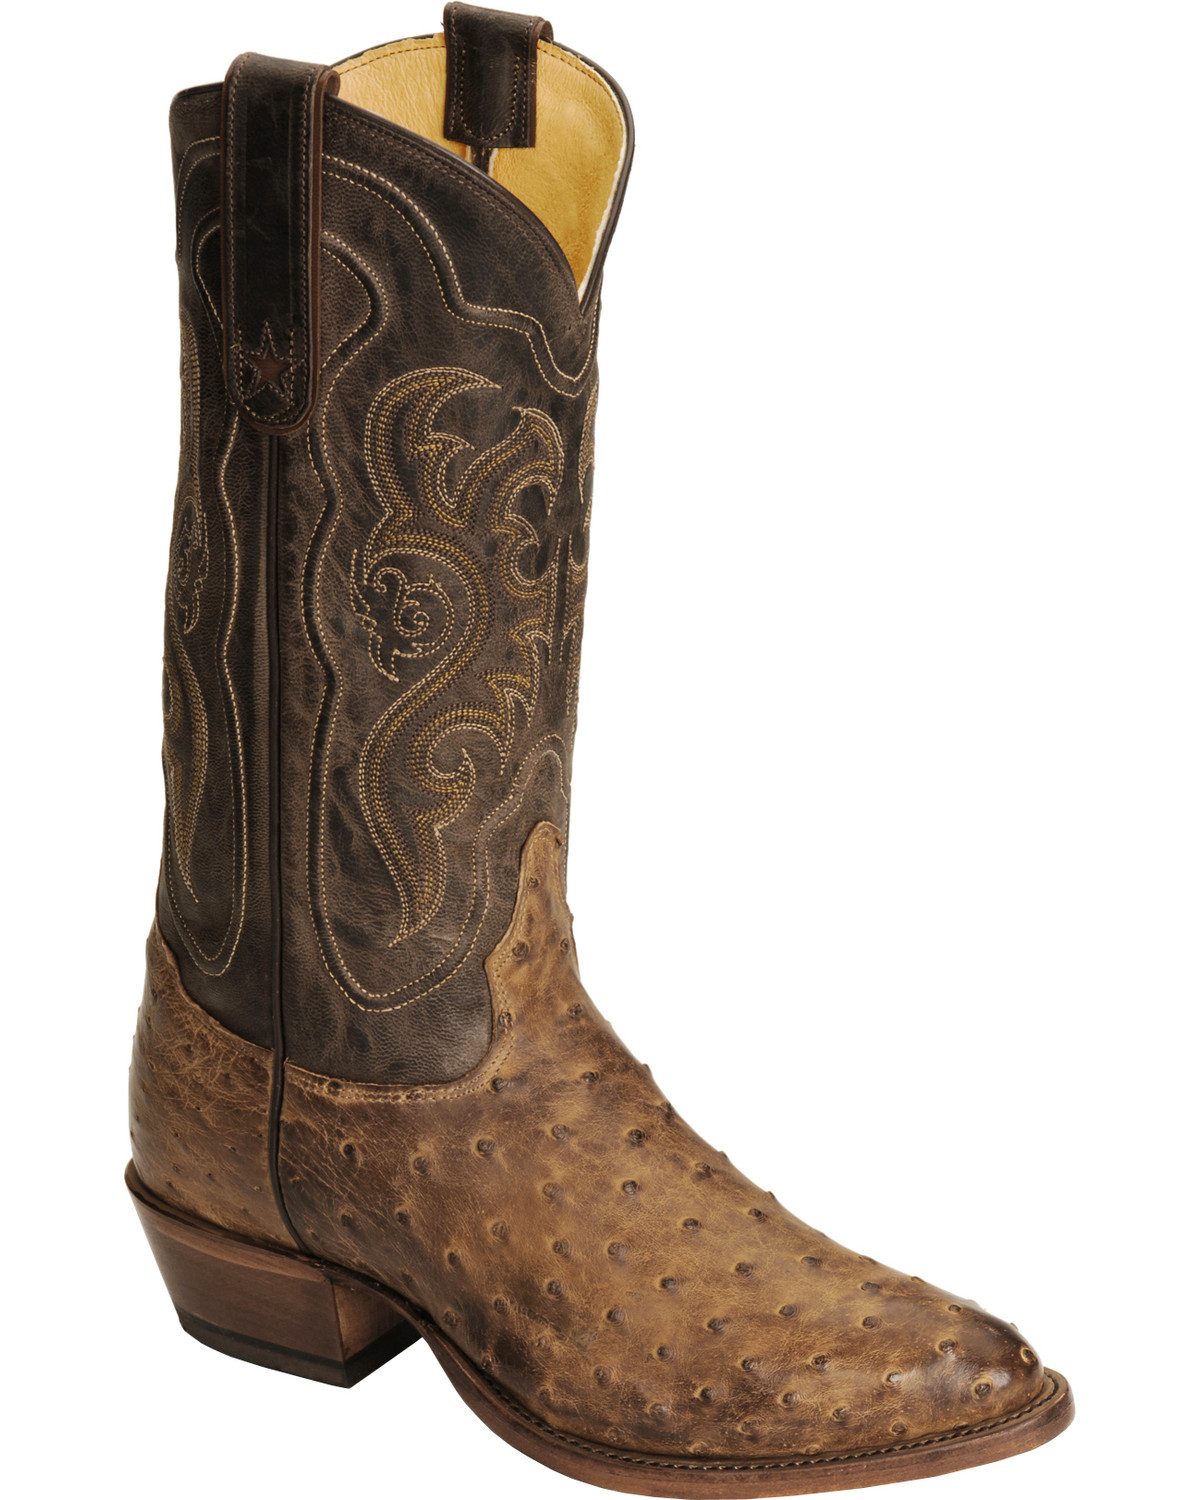 American Cowboy Boots: Made in the USA - Sheplers